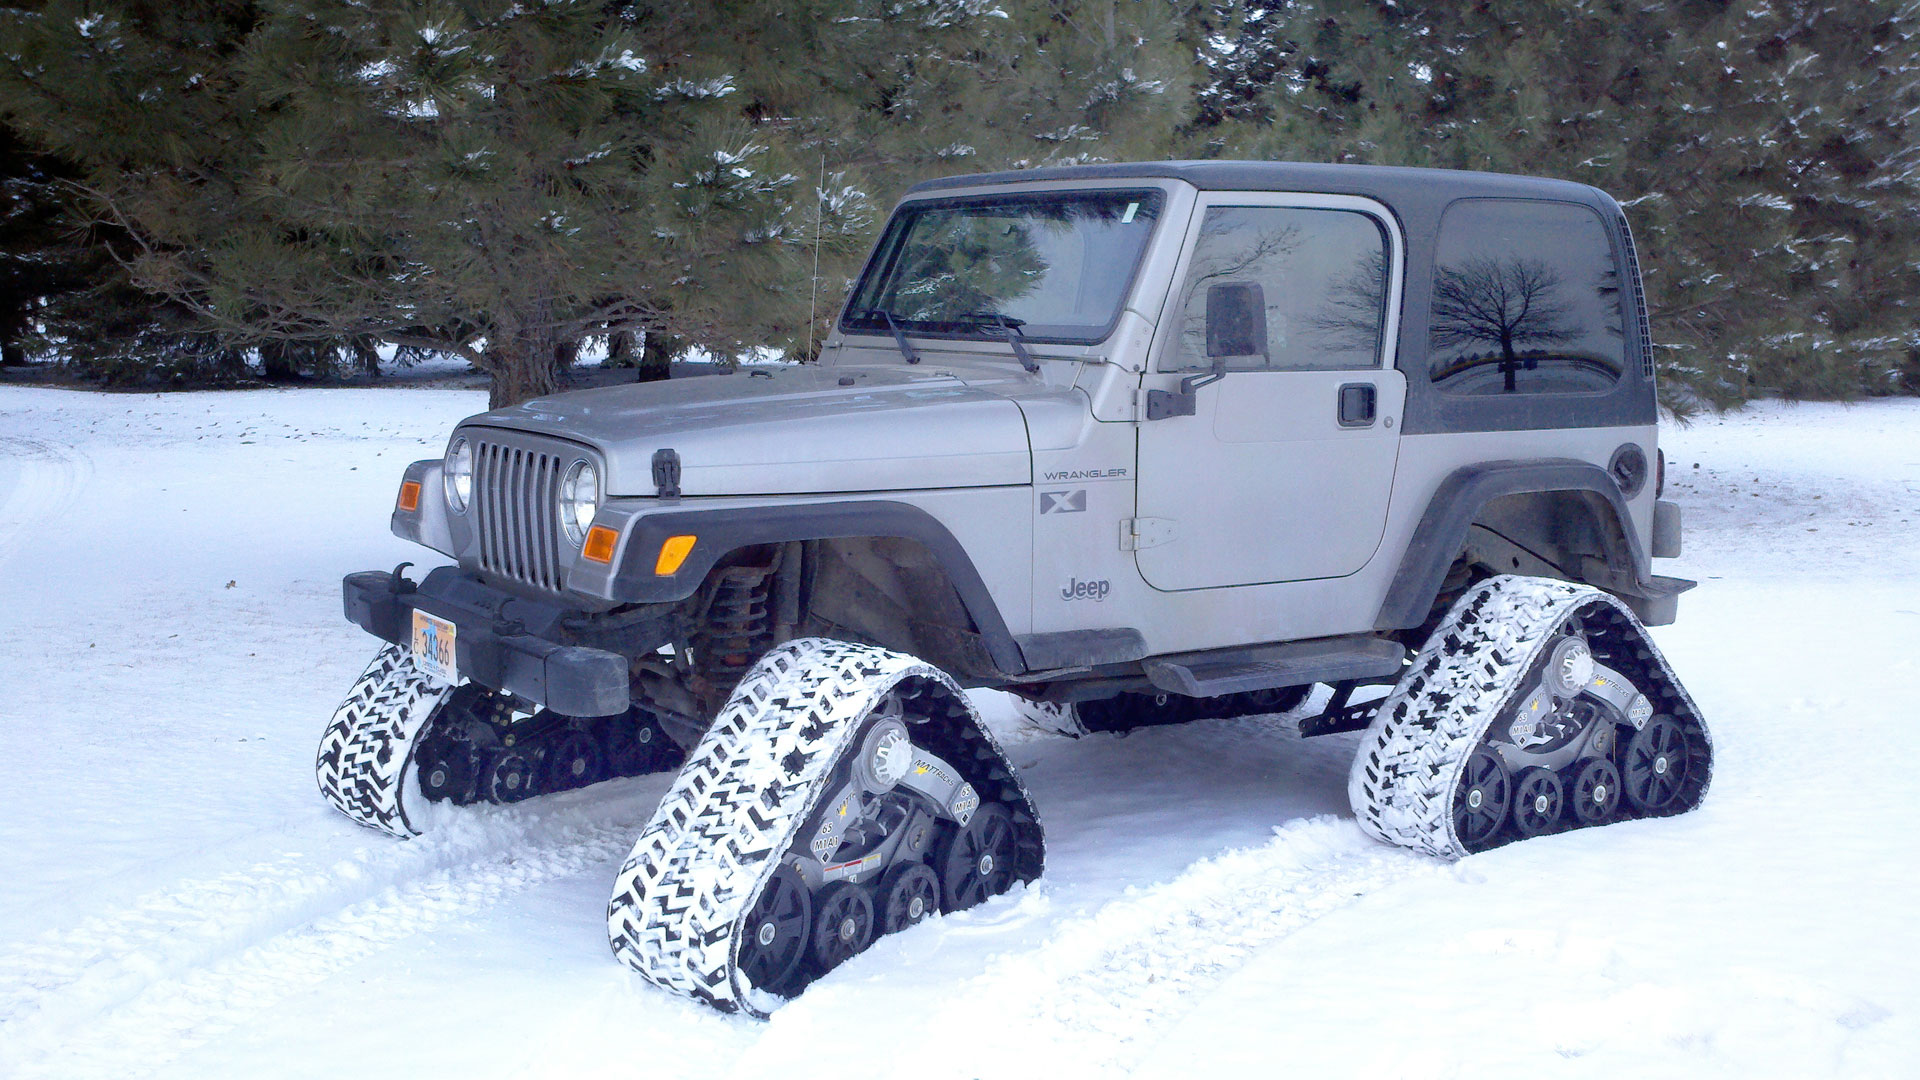 65 Series Tracks on a Jeep Wrangler